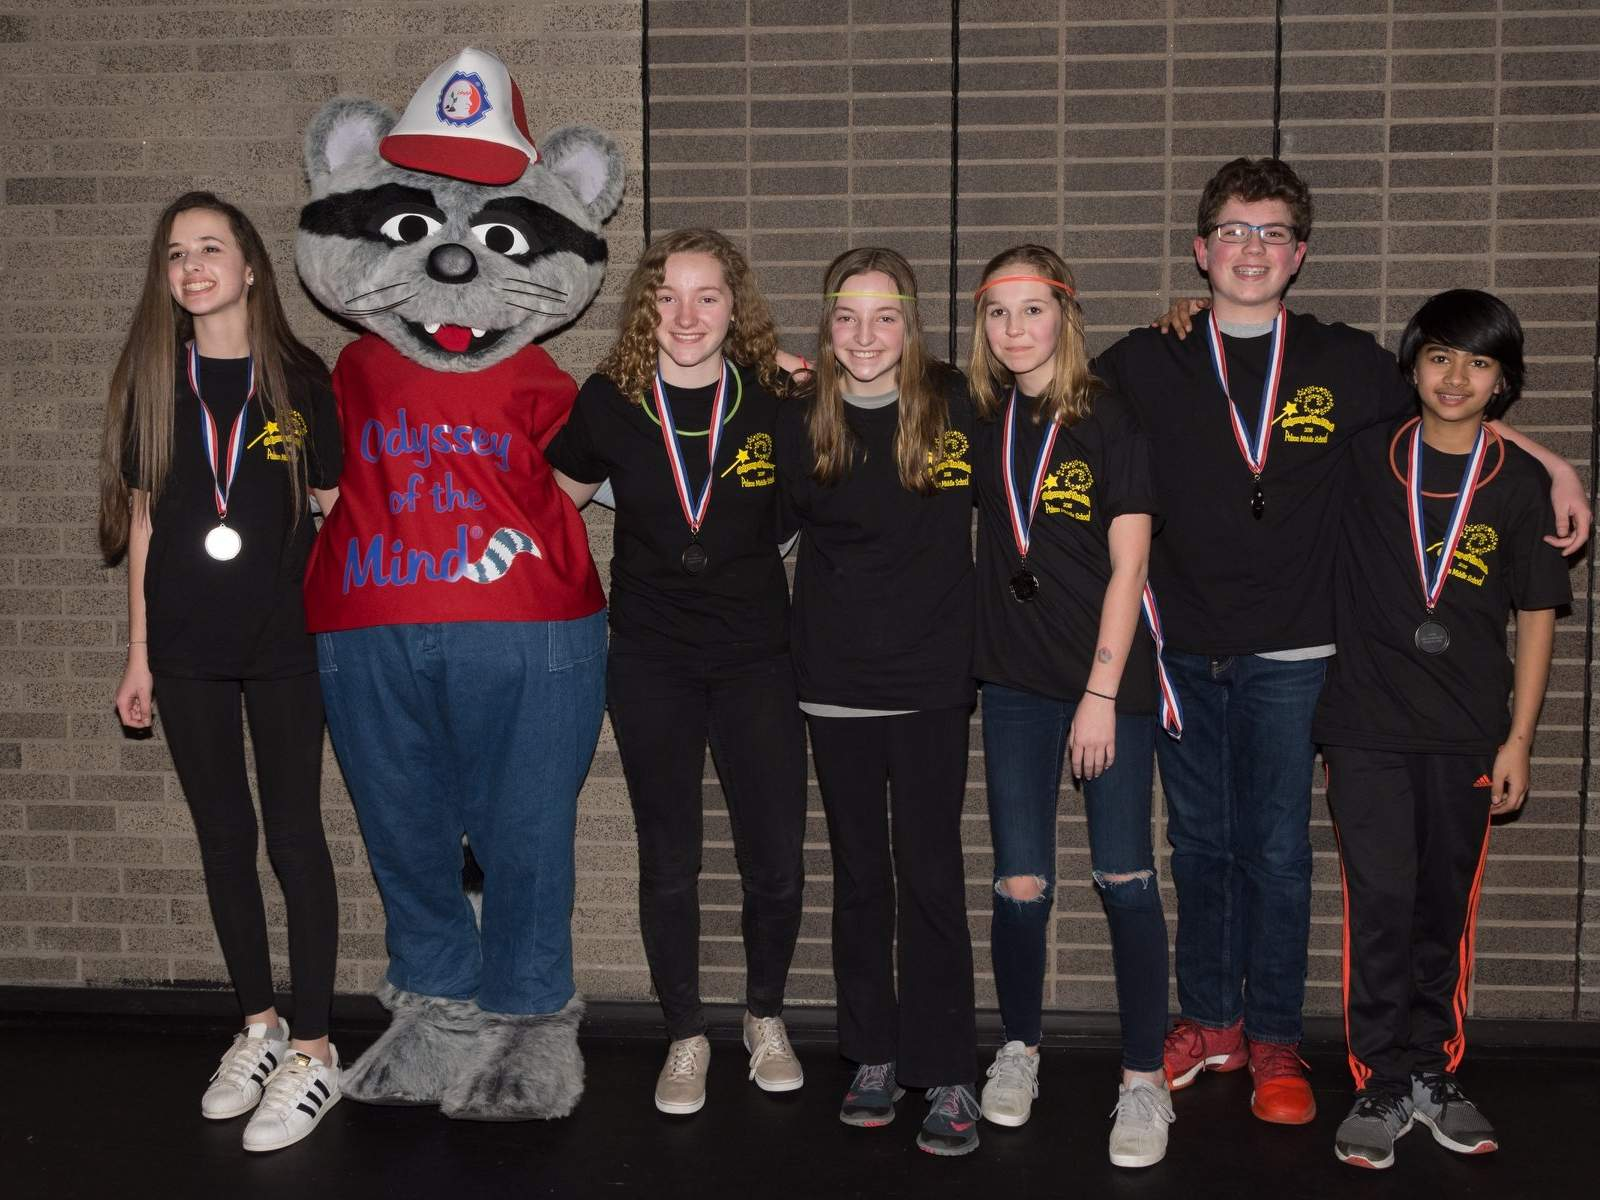 The Odyssey of the Mind Team from Polson Middle School placed second in their division at the CT competition.  They will be going to world finals in Iowa this May.  Team members pictured: Chloe Burt,Kelly Fay, Alanna Fay, Ella Bennett, Liam Lynch, Mahir Thadani. Not pictured: Coach Laura Lynch